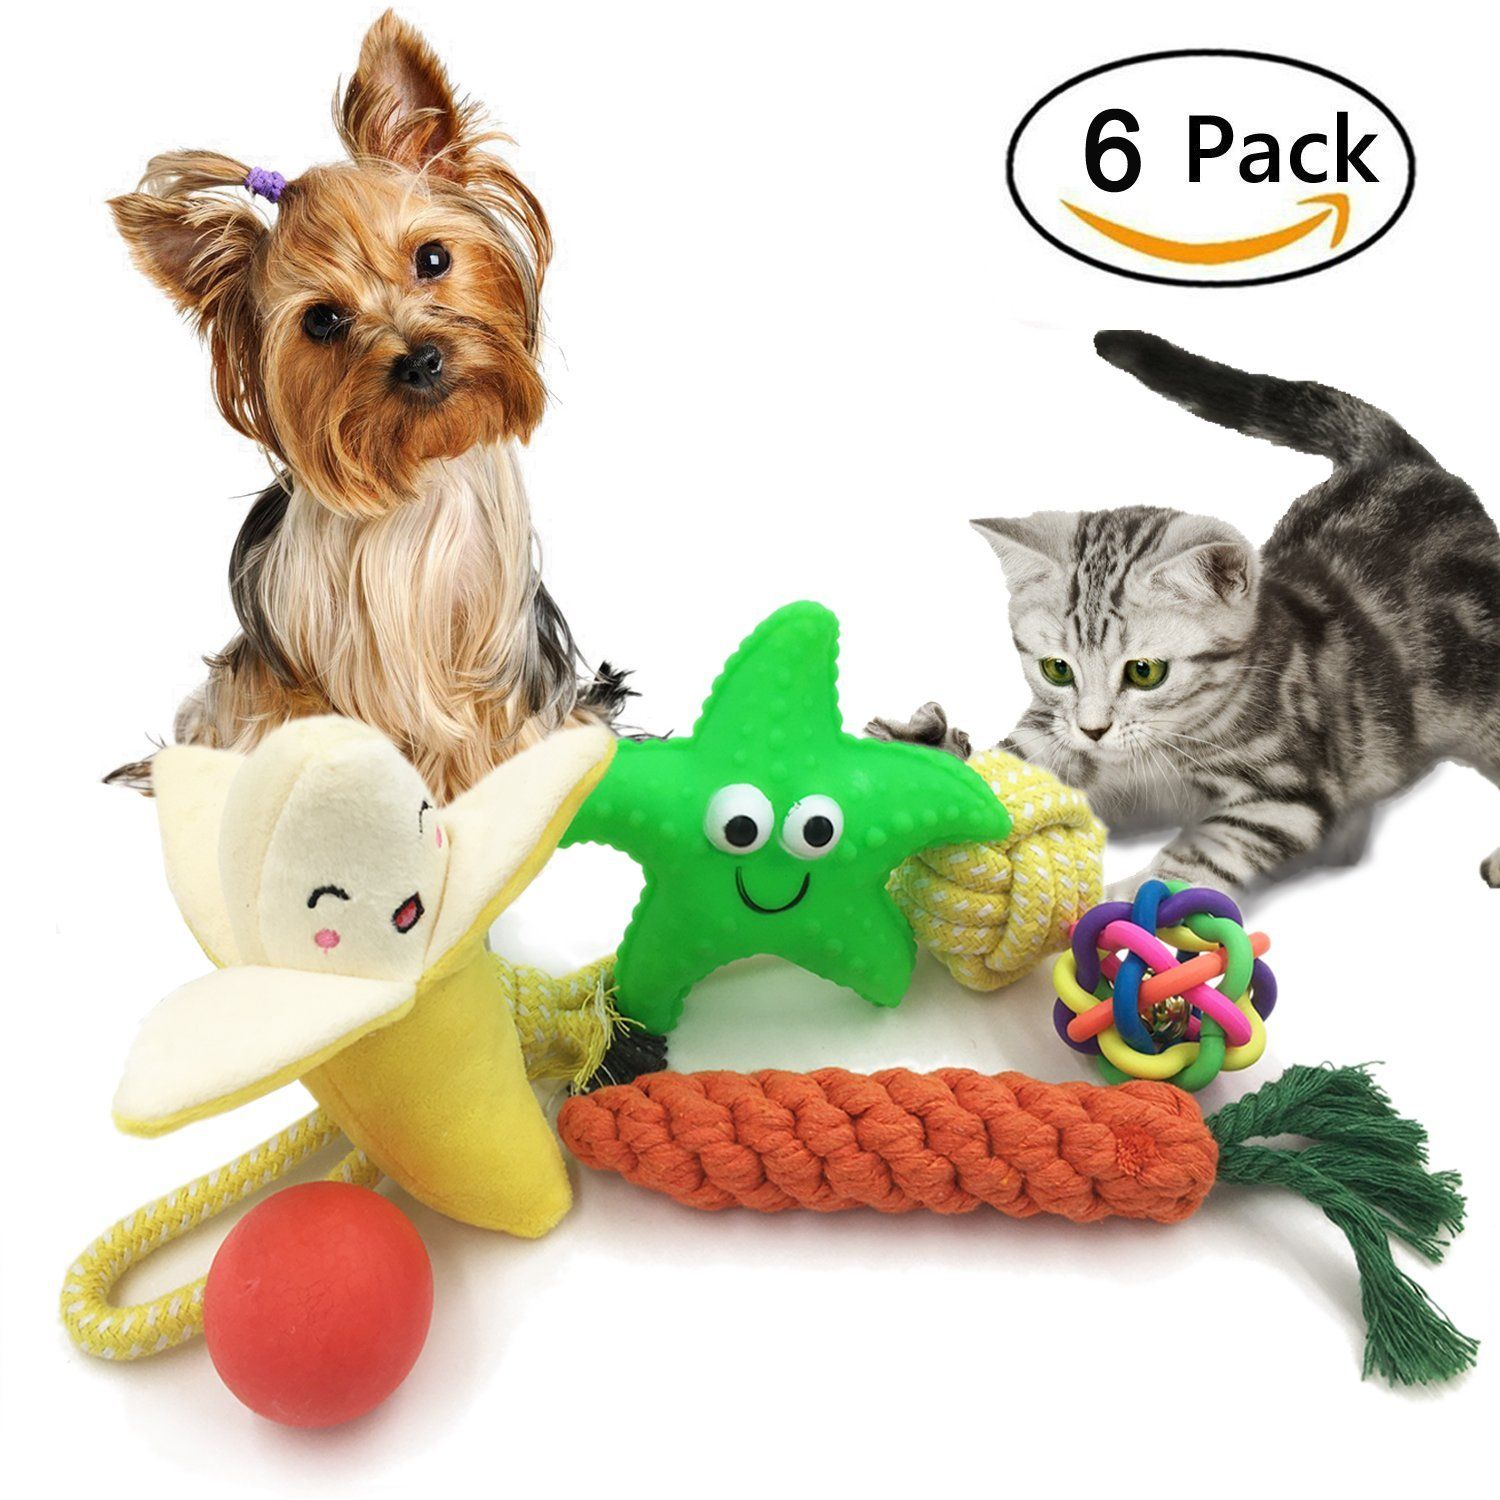 6 Pack Dog Toy Set Ball Rope and Chew Squeaky Toys for Small Medium ... | Best Dog Toys For Small Dogs